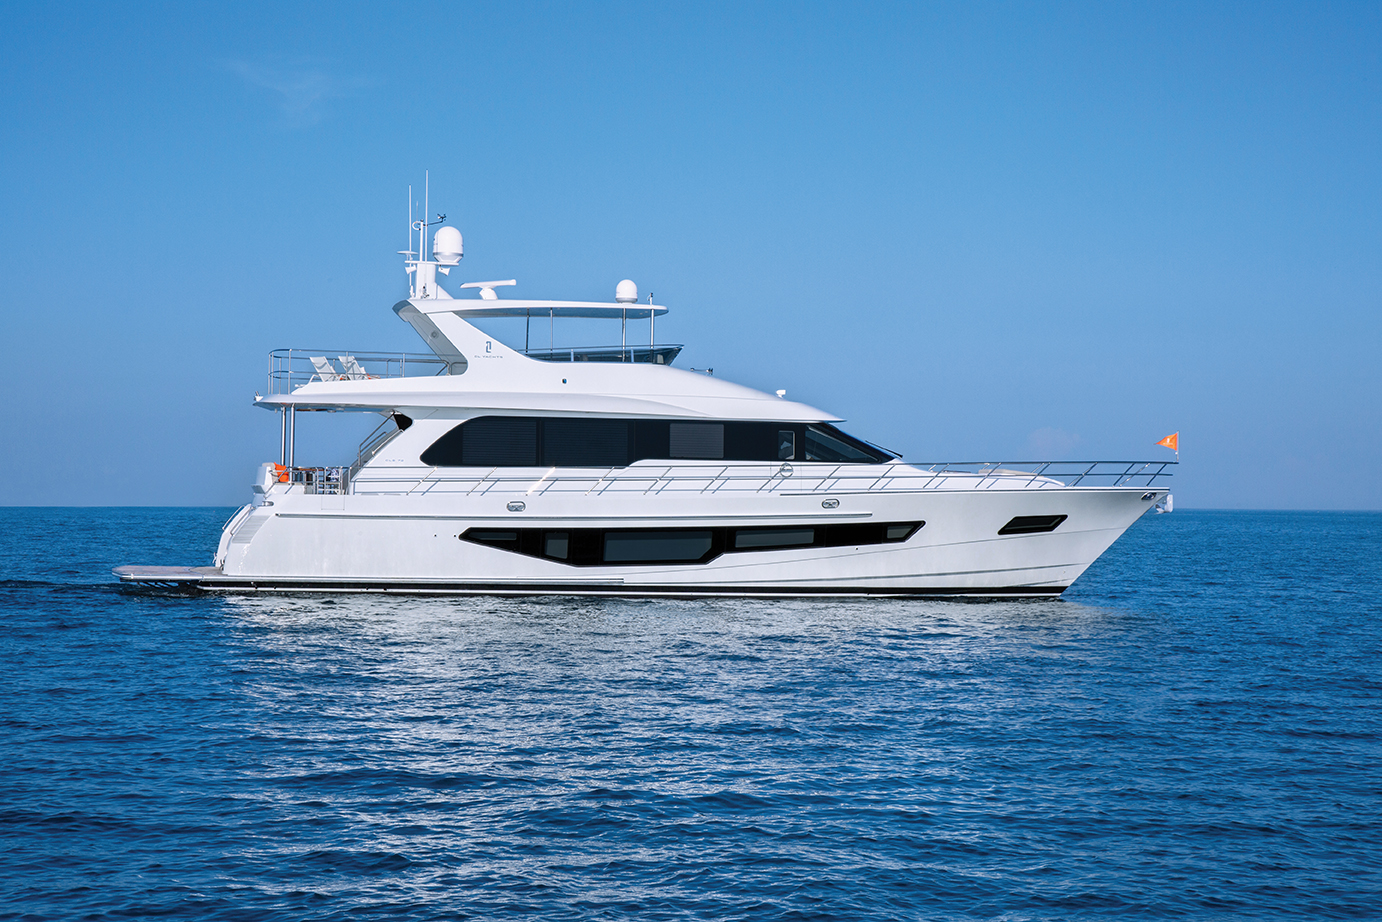 CLB72 anchored side profile